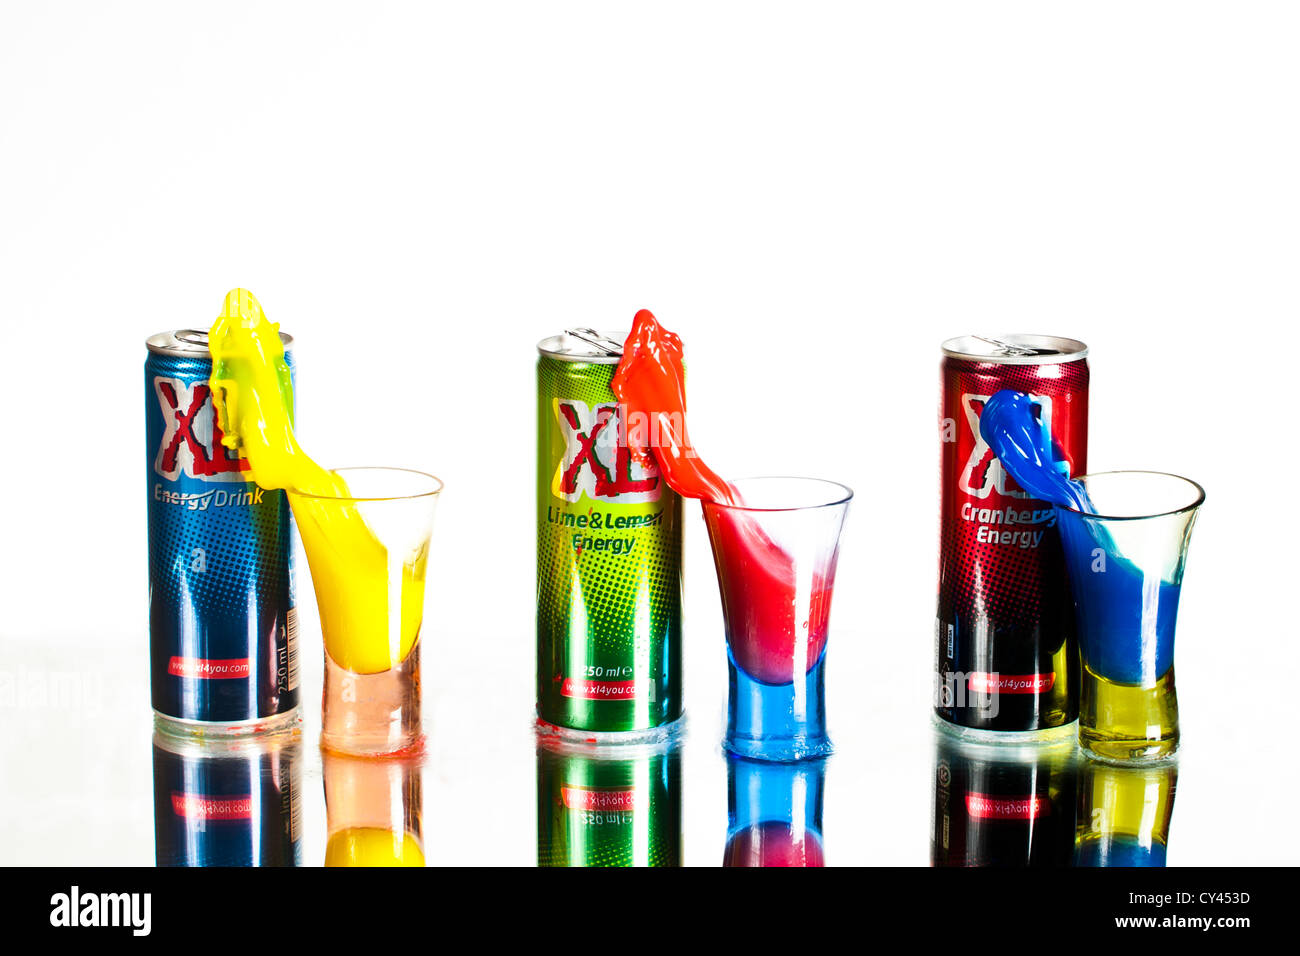 Colourful energy drinks pouring into glasses. Stop motion High-Speed photography technique - Stock Image